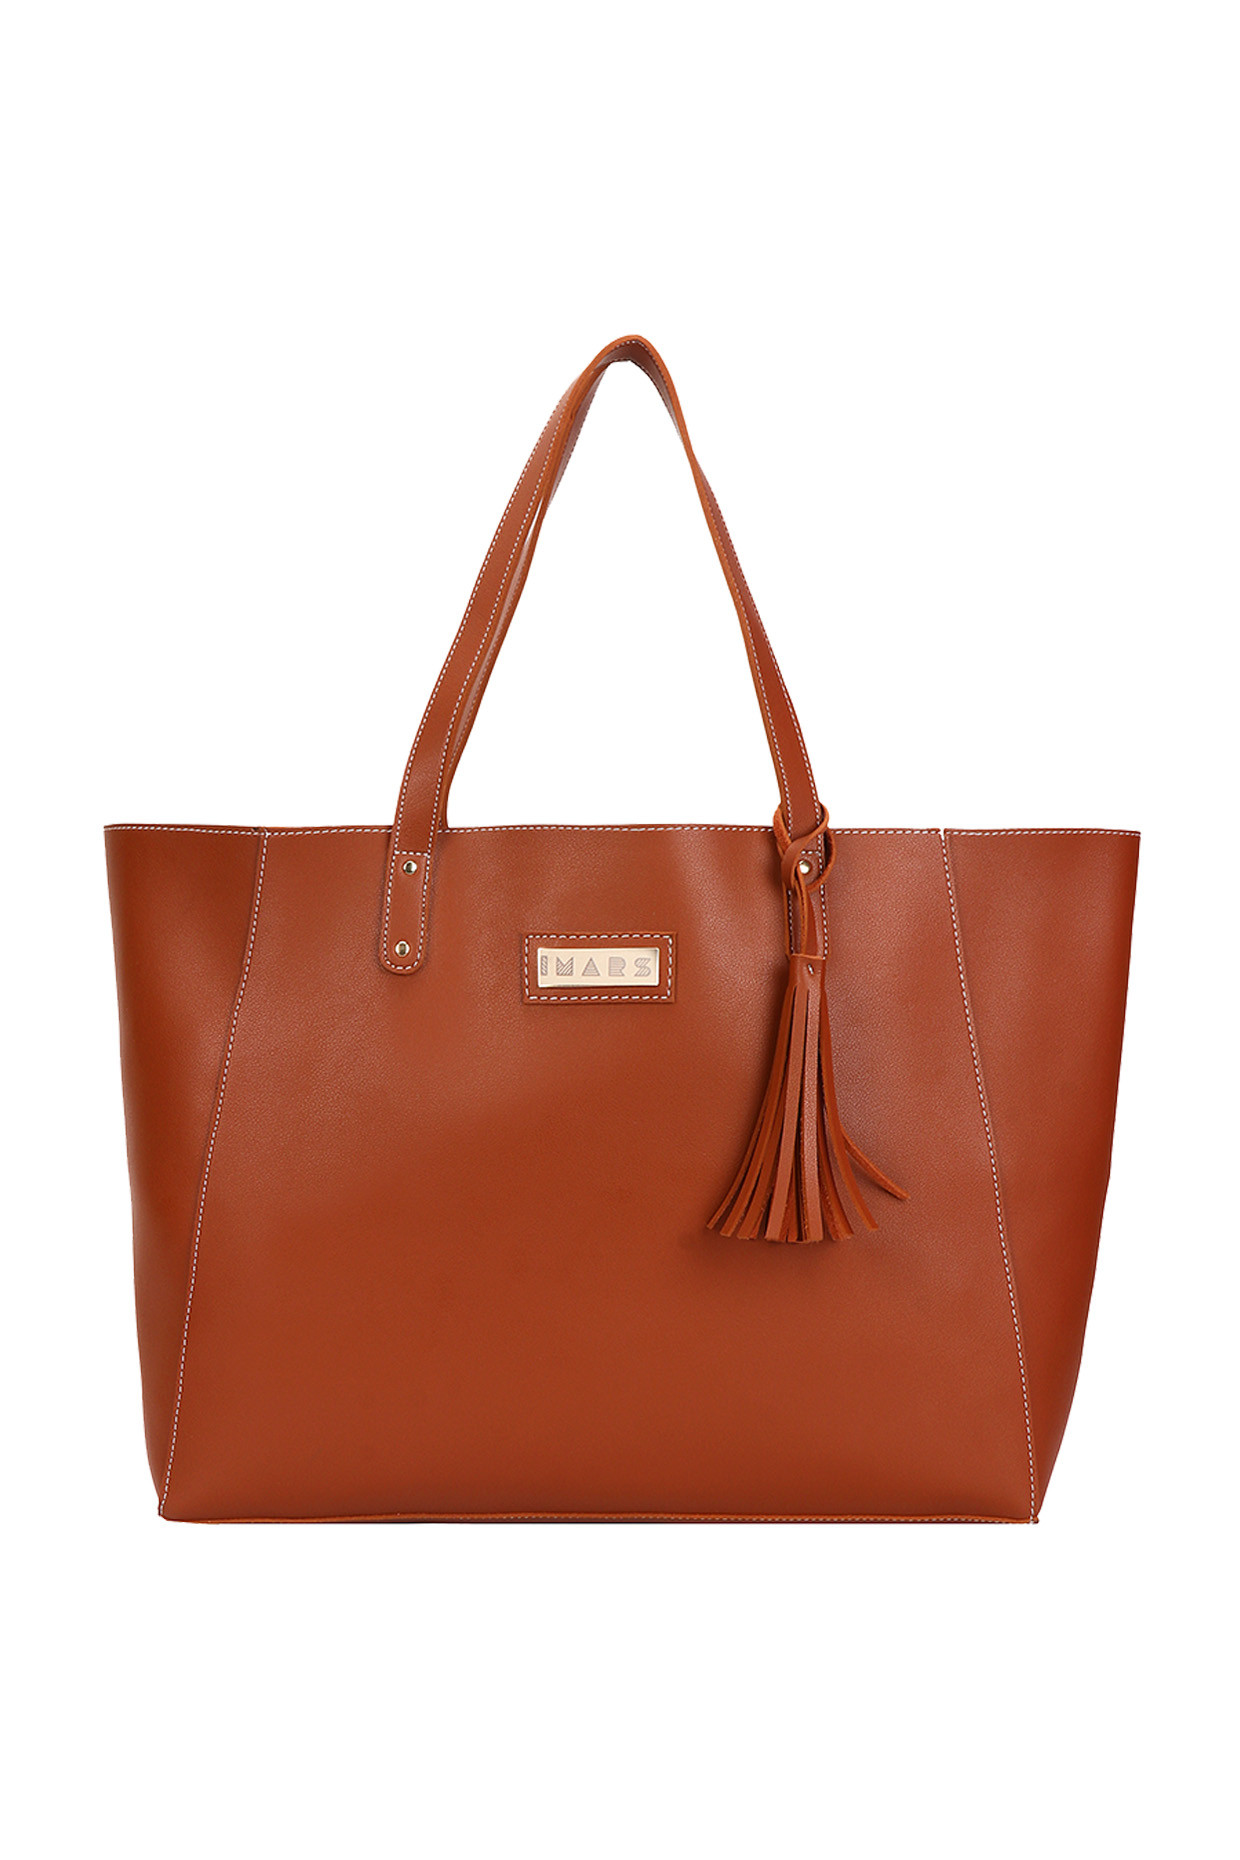 Tan Signature Shopper Tote by Imars-Handpicked for You